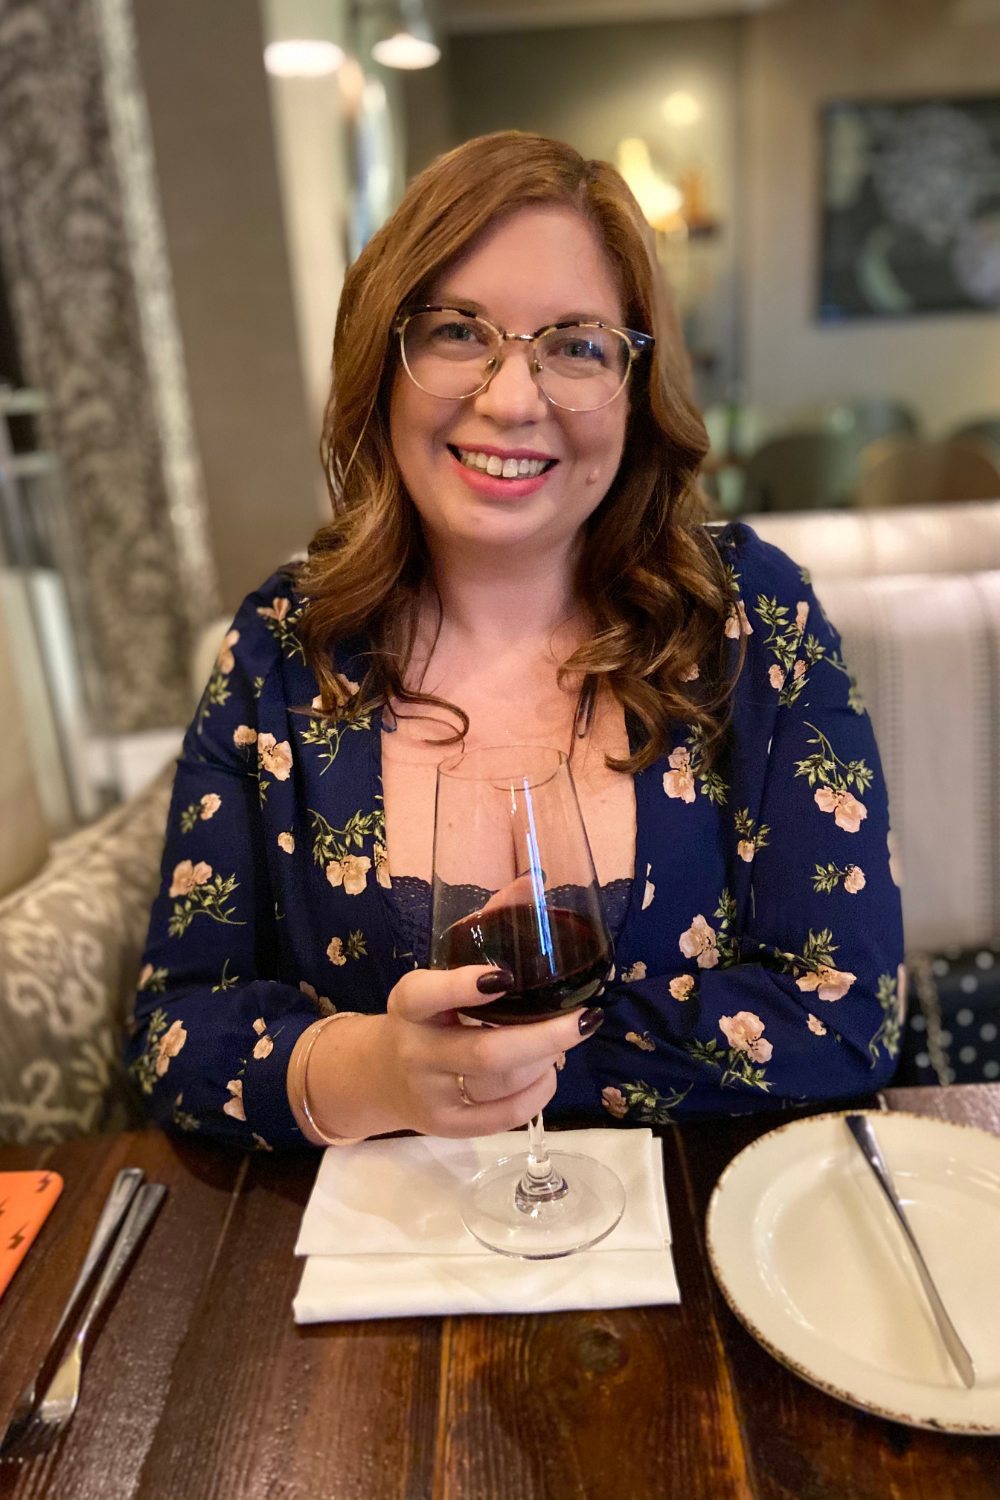 Staying at St Ermin's Hotel in London